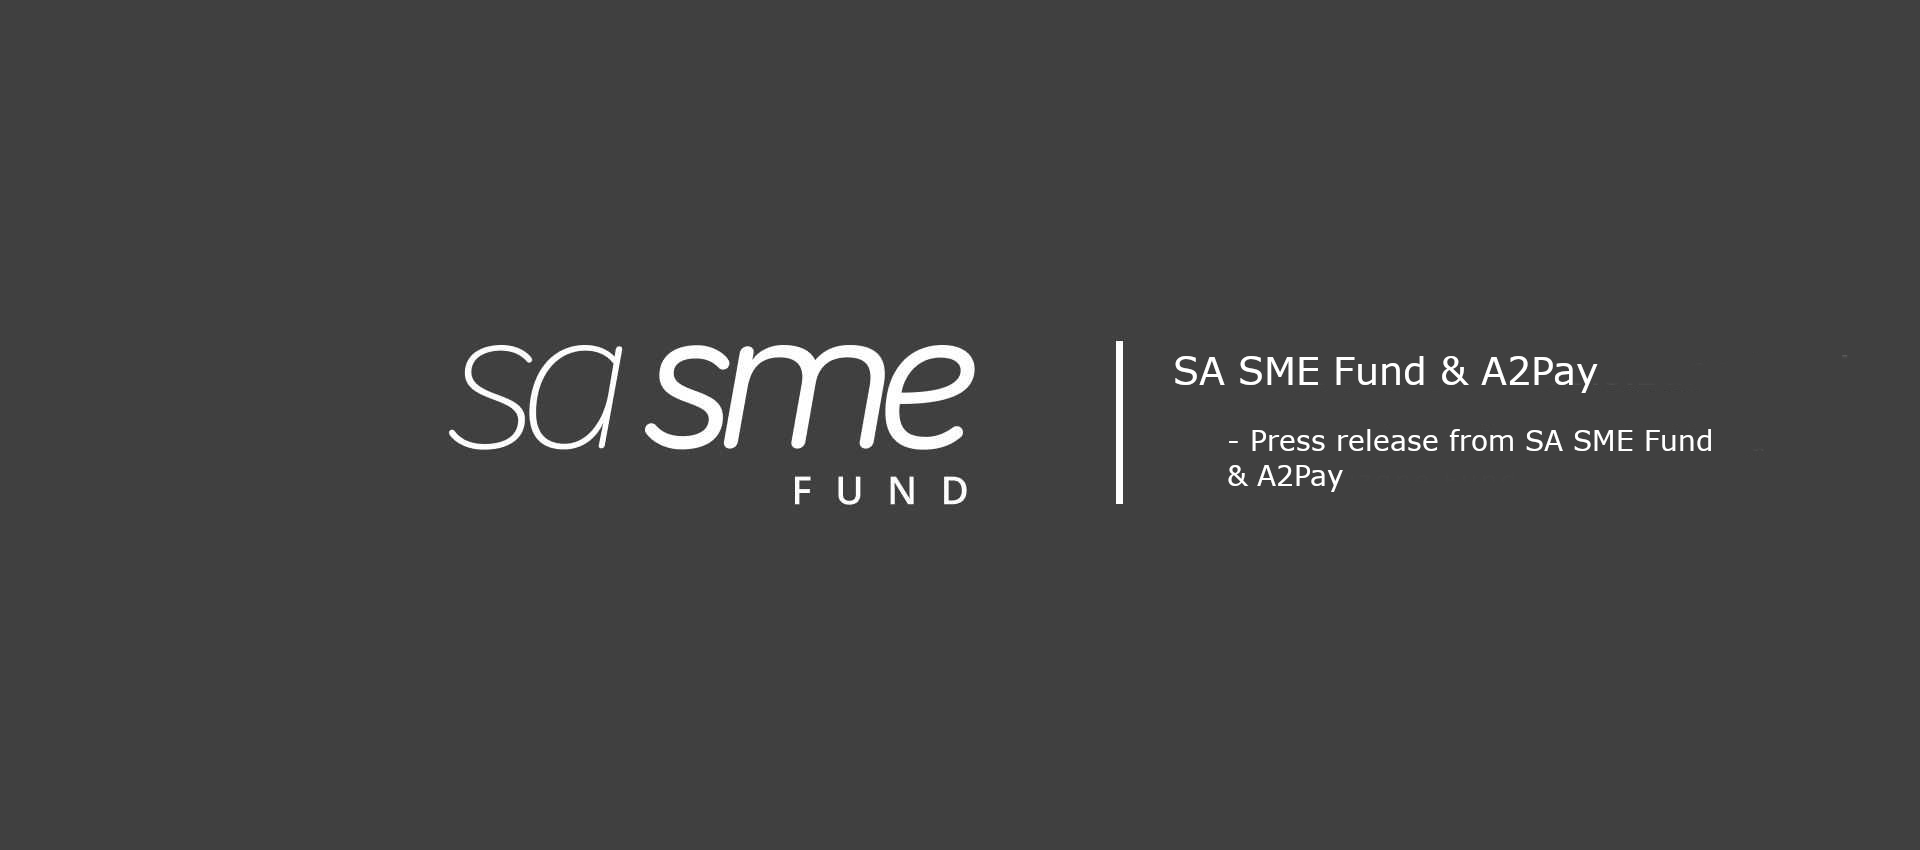 SA SME Fund investment in A2Pay to drive growth, financial inclusion for spazas